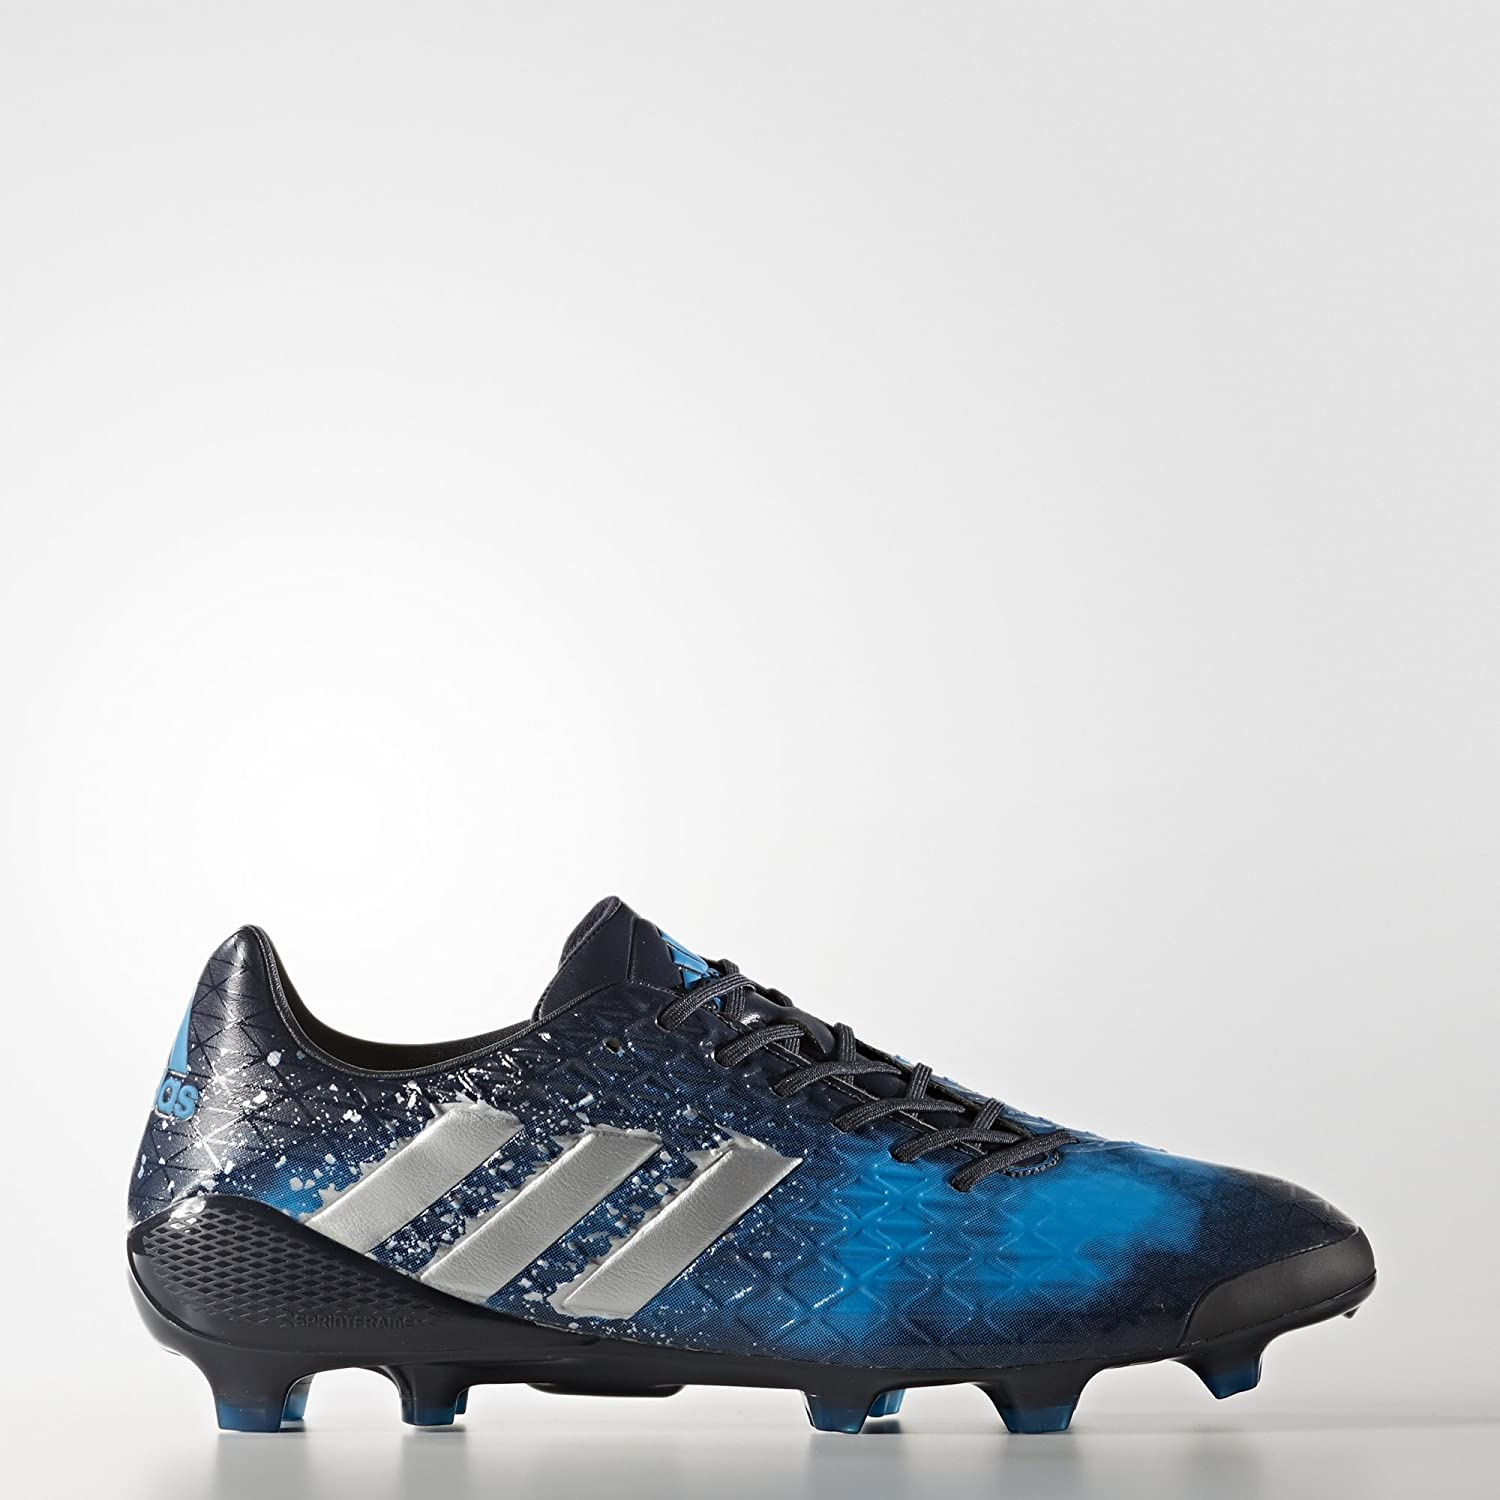 on sale cb31e 2716c Predator Malice FG Rugby Boots - Night NavySilver MetallicSolar Blue adidas  Predator Malice SG Boots in the new adidas specialty sports online shop.  Find ...